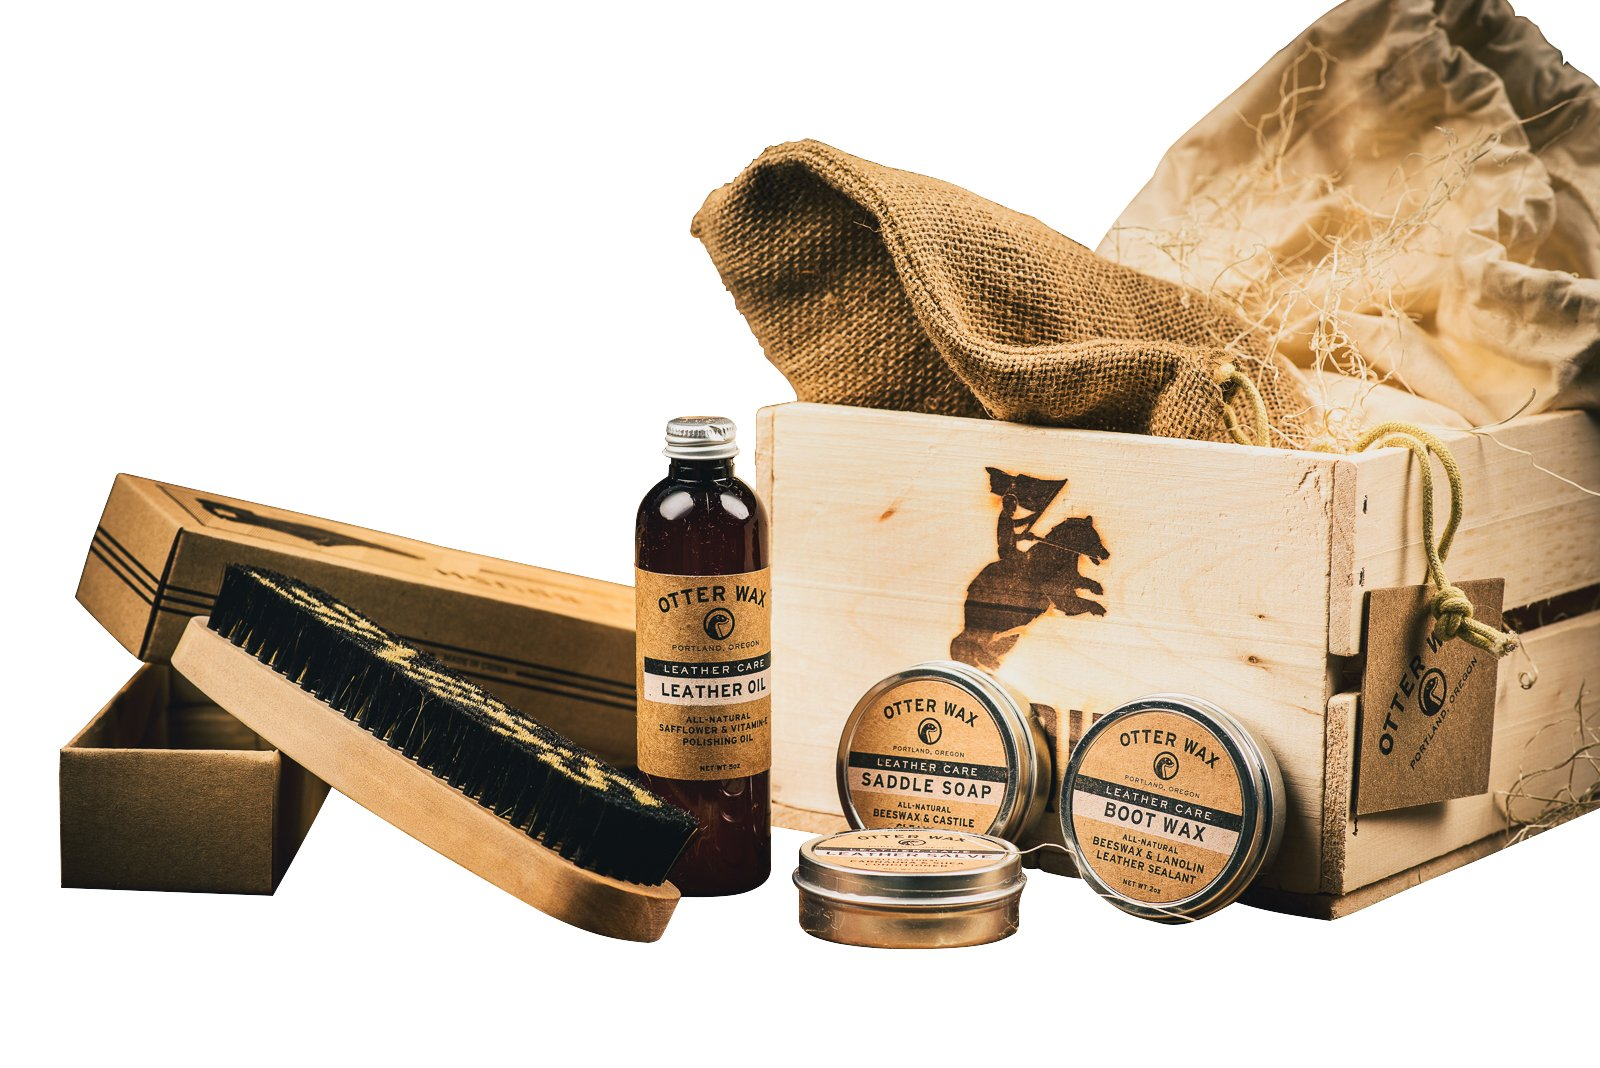 Leather Shoe Care Gift Set (Travel Shoe Shine Kit) - Comes in A Wooden Gift Crate - Great Gift for Men